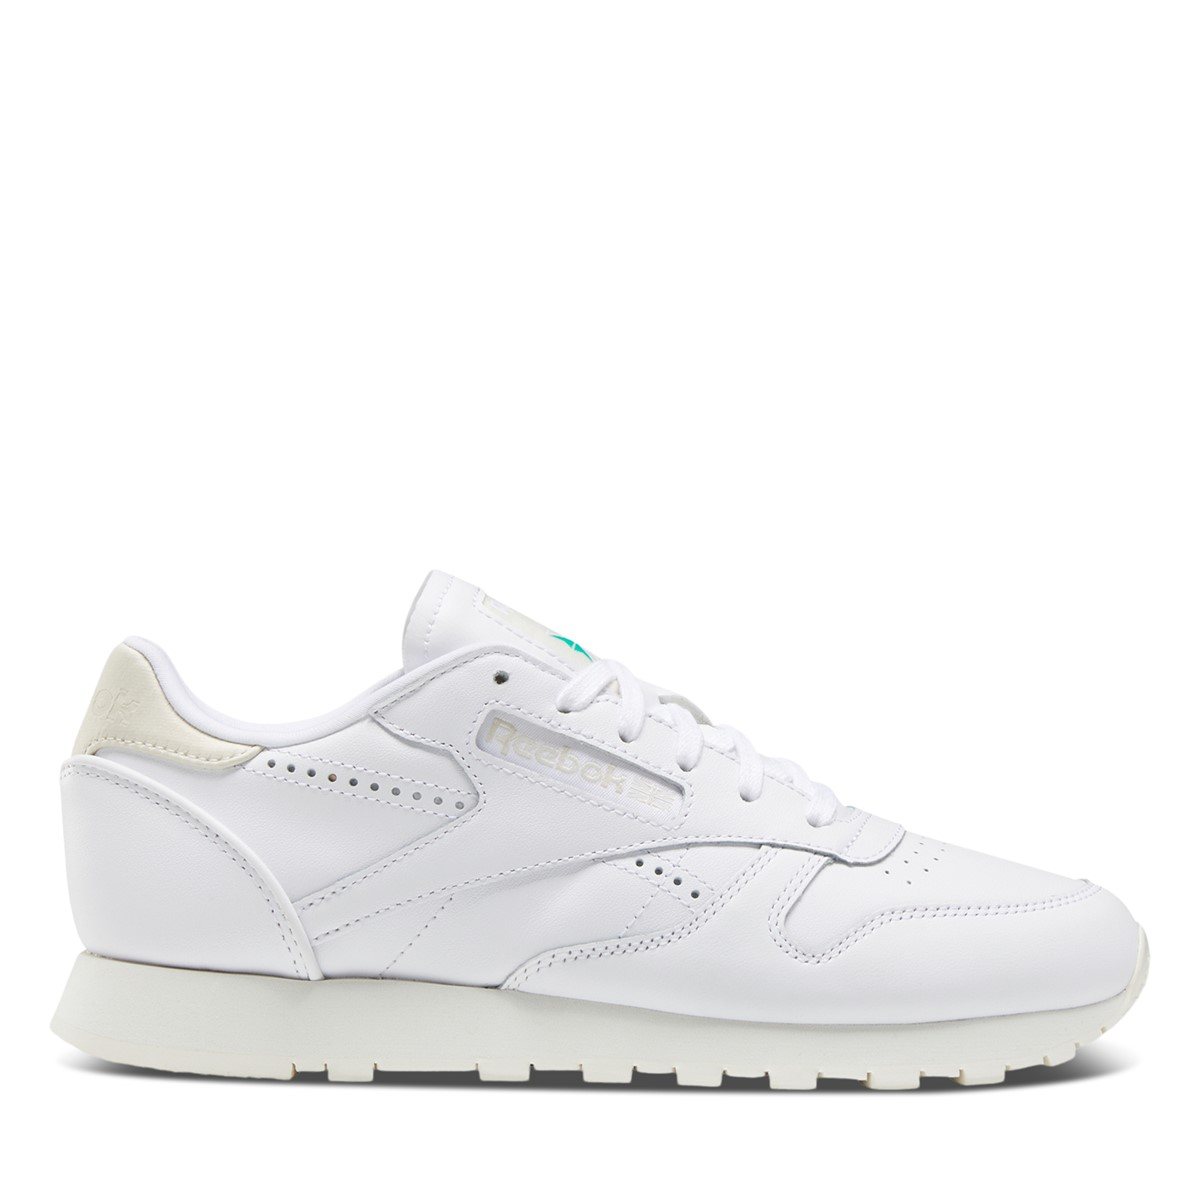 Women's Classic Leather Vintage Sneakers in White